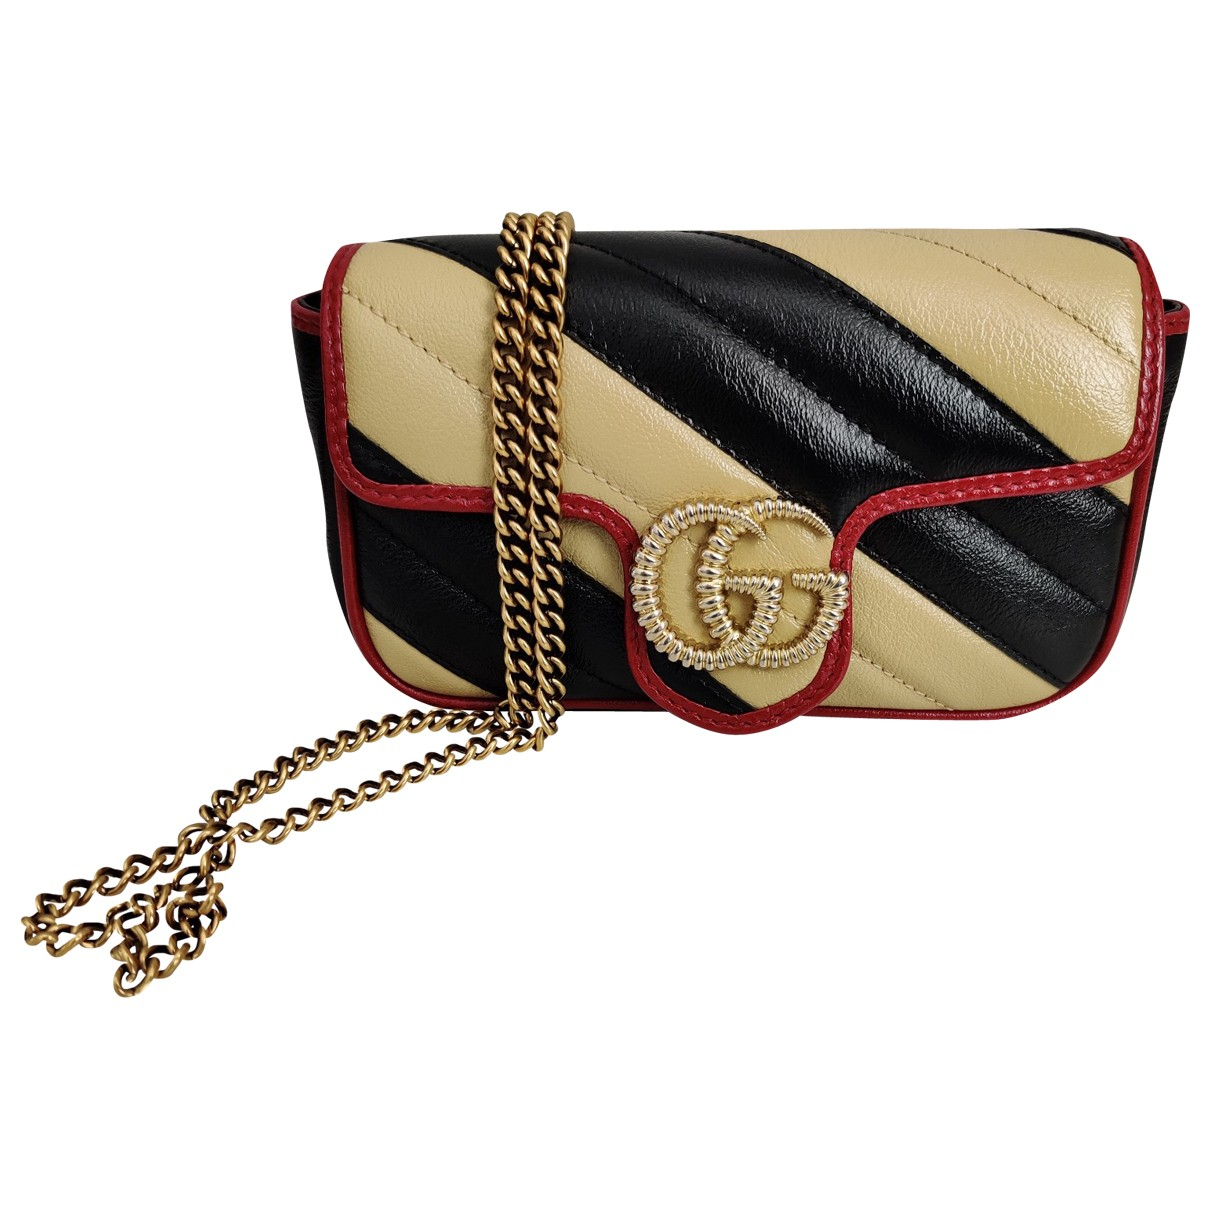 Gucci Marmont Beige Leather handbag for Women \N